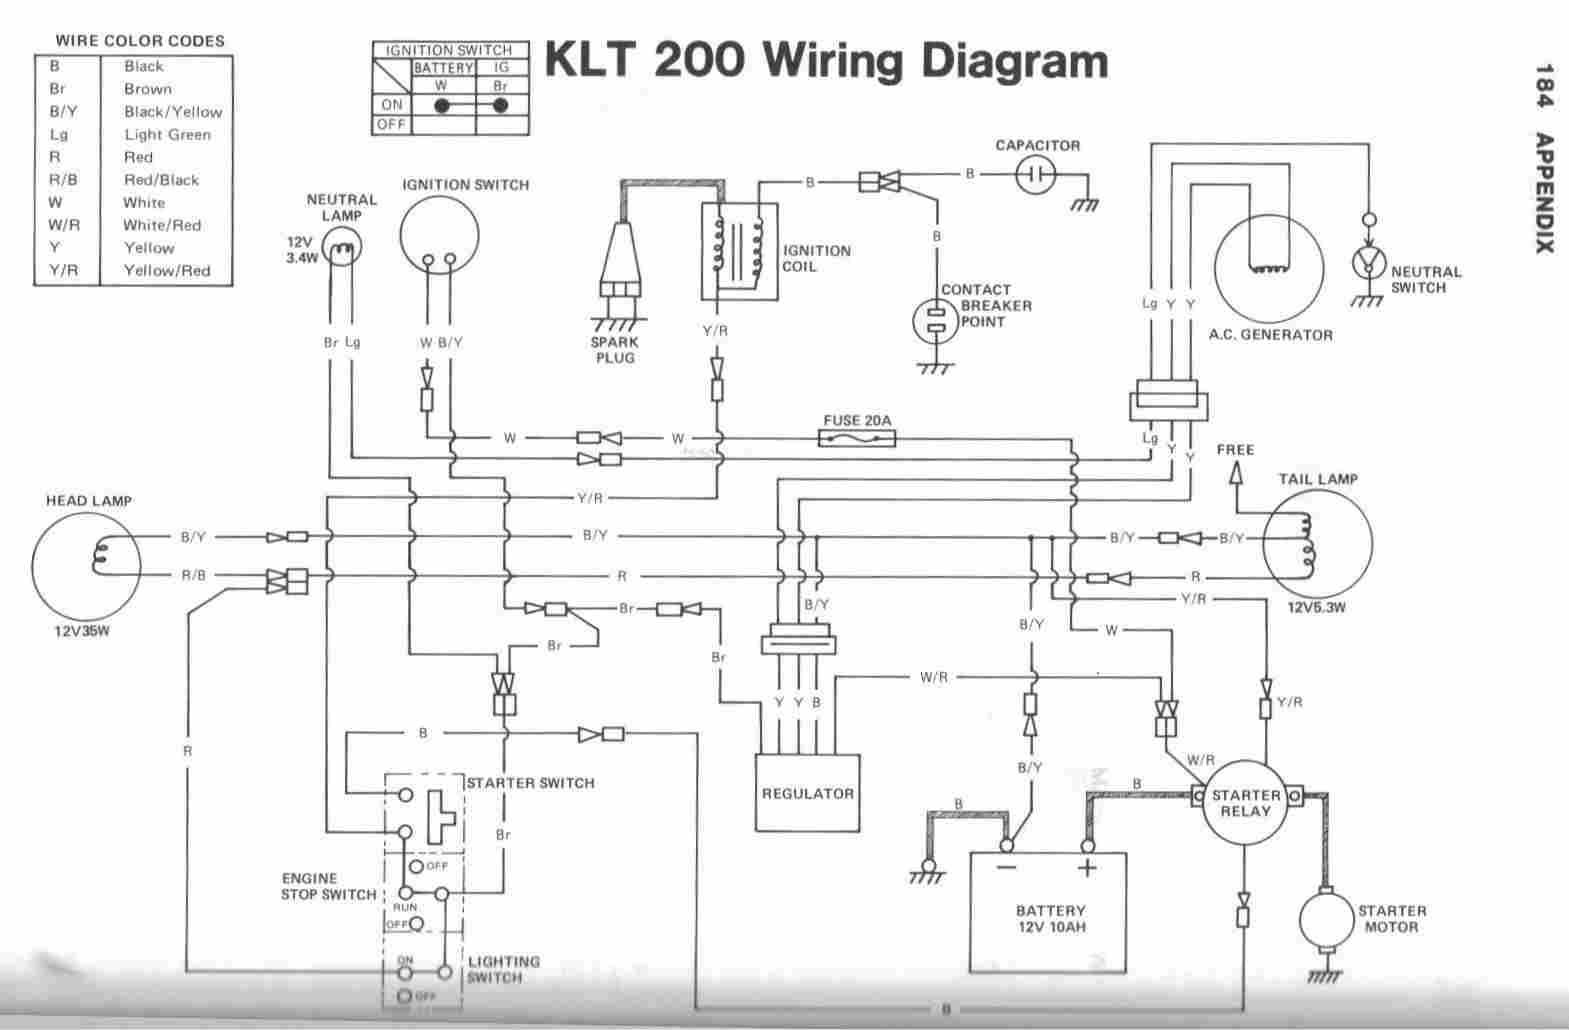 2869034594ce054a636782e5c44b61b4 wiring diagrams \u2022 woorishop co sony xav 62bt wiring diagram at mr168.co